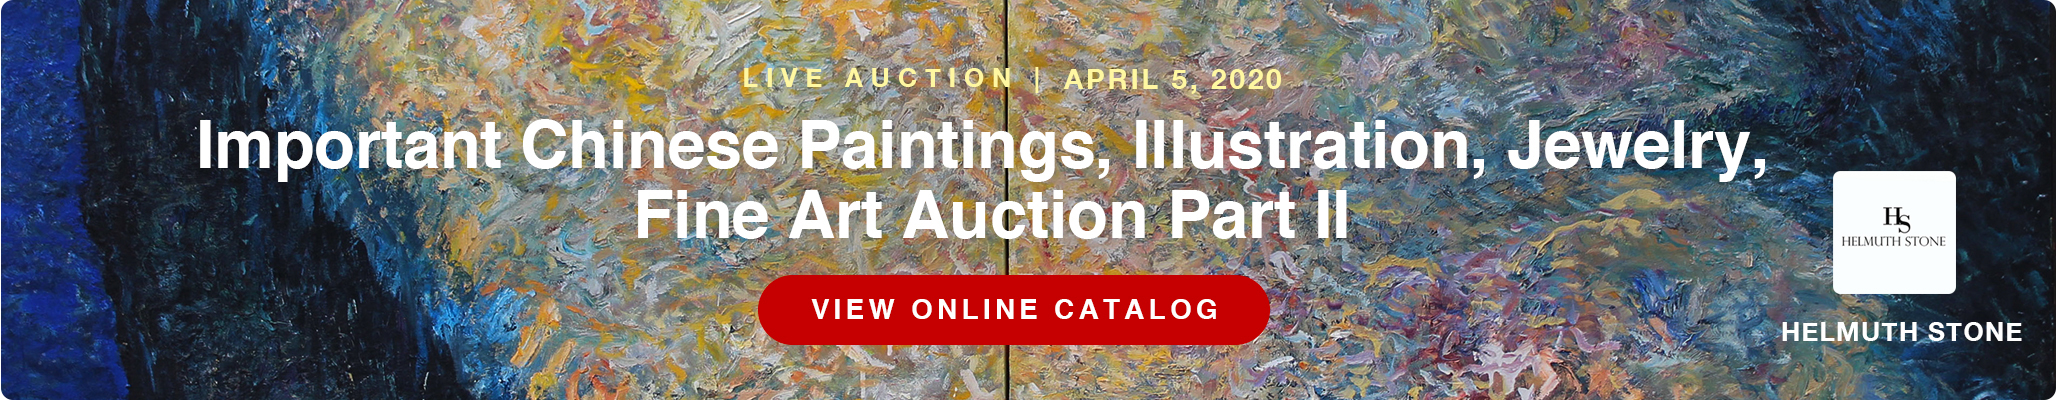 Important Chinese Paintings, Illustration, Jewelry, Fine Art Auction Part II